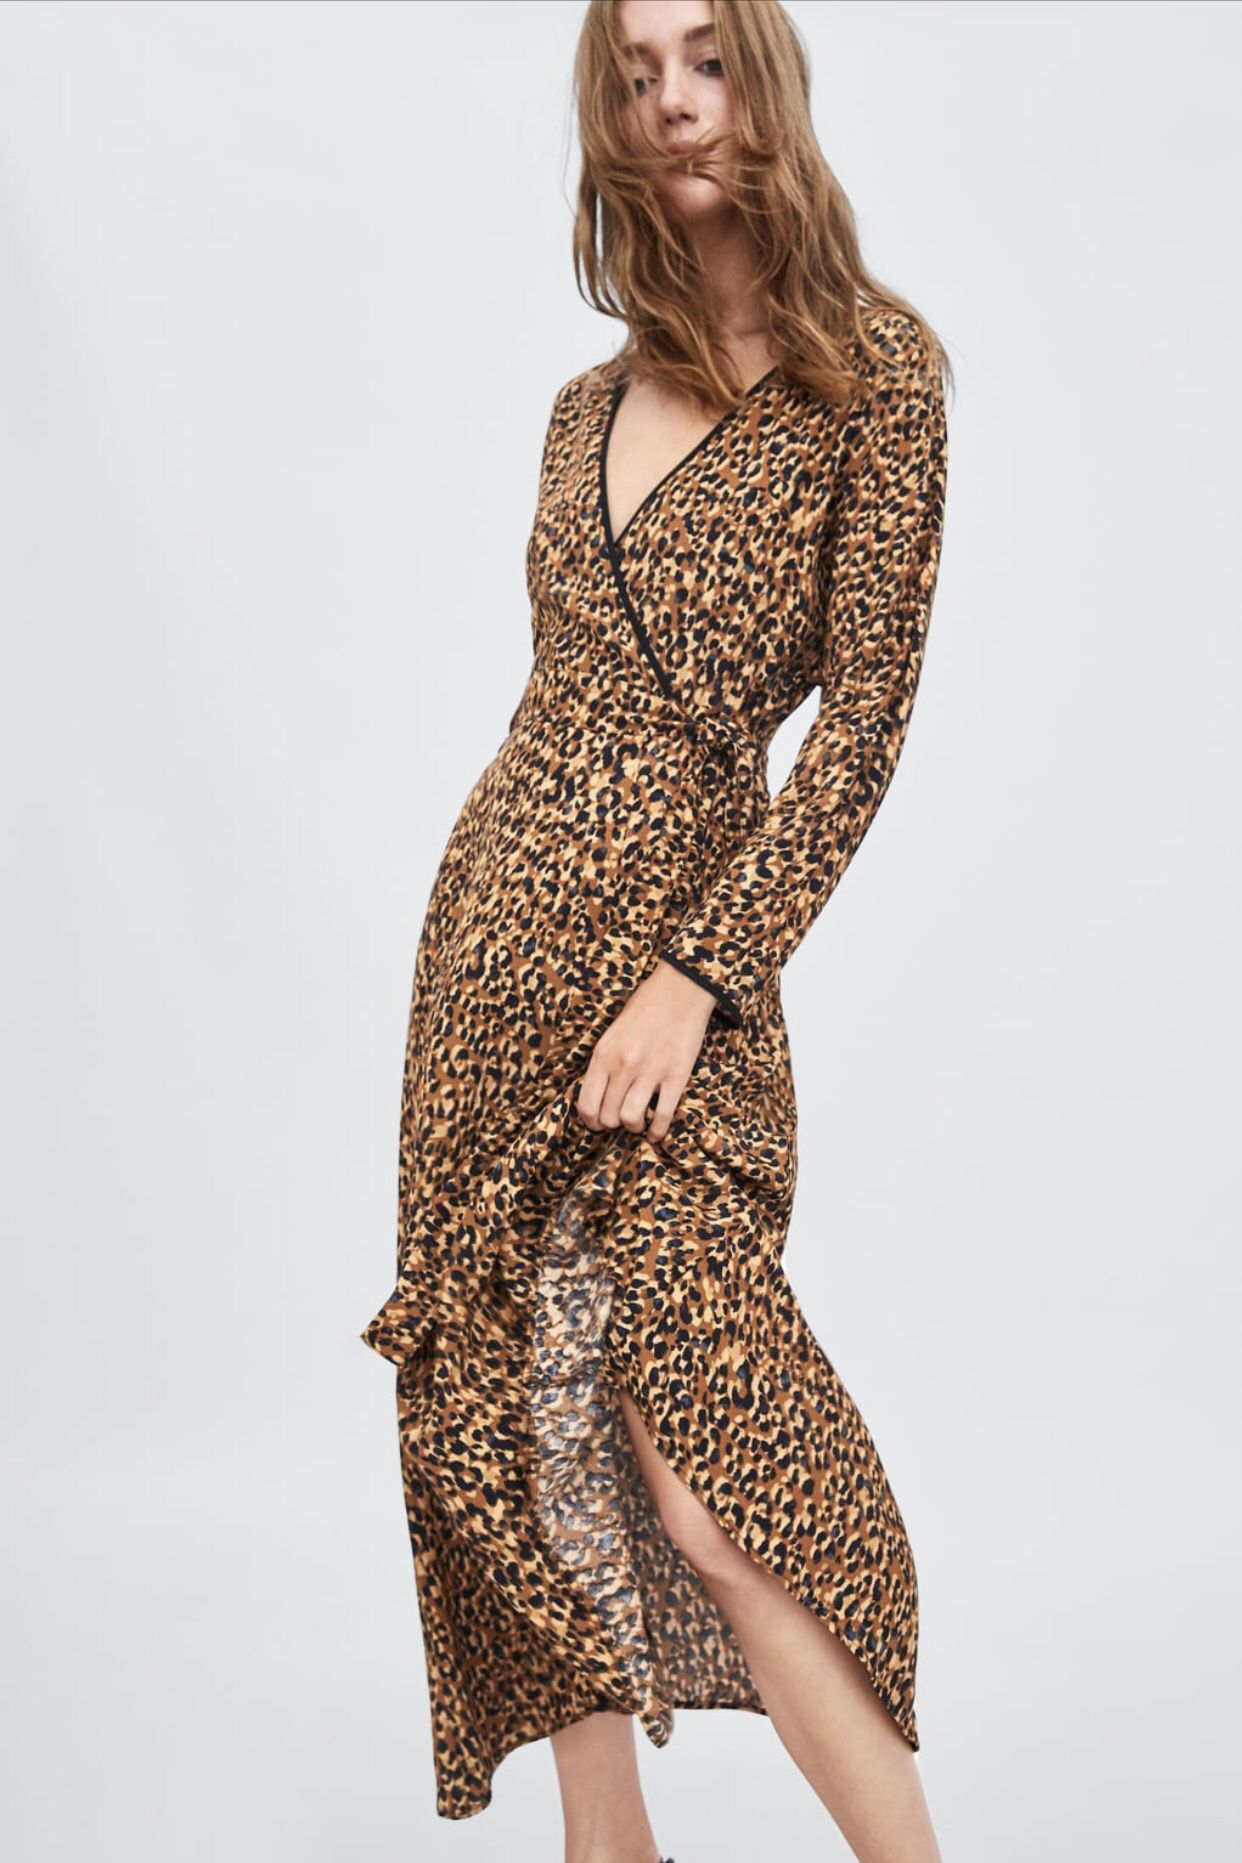 474ff6156122 Animal Print Dresses, Animal Prints, Wrap Dress, Dress Skirt, Leopard Animal ,